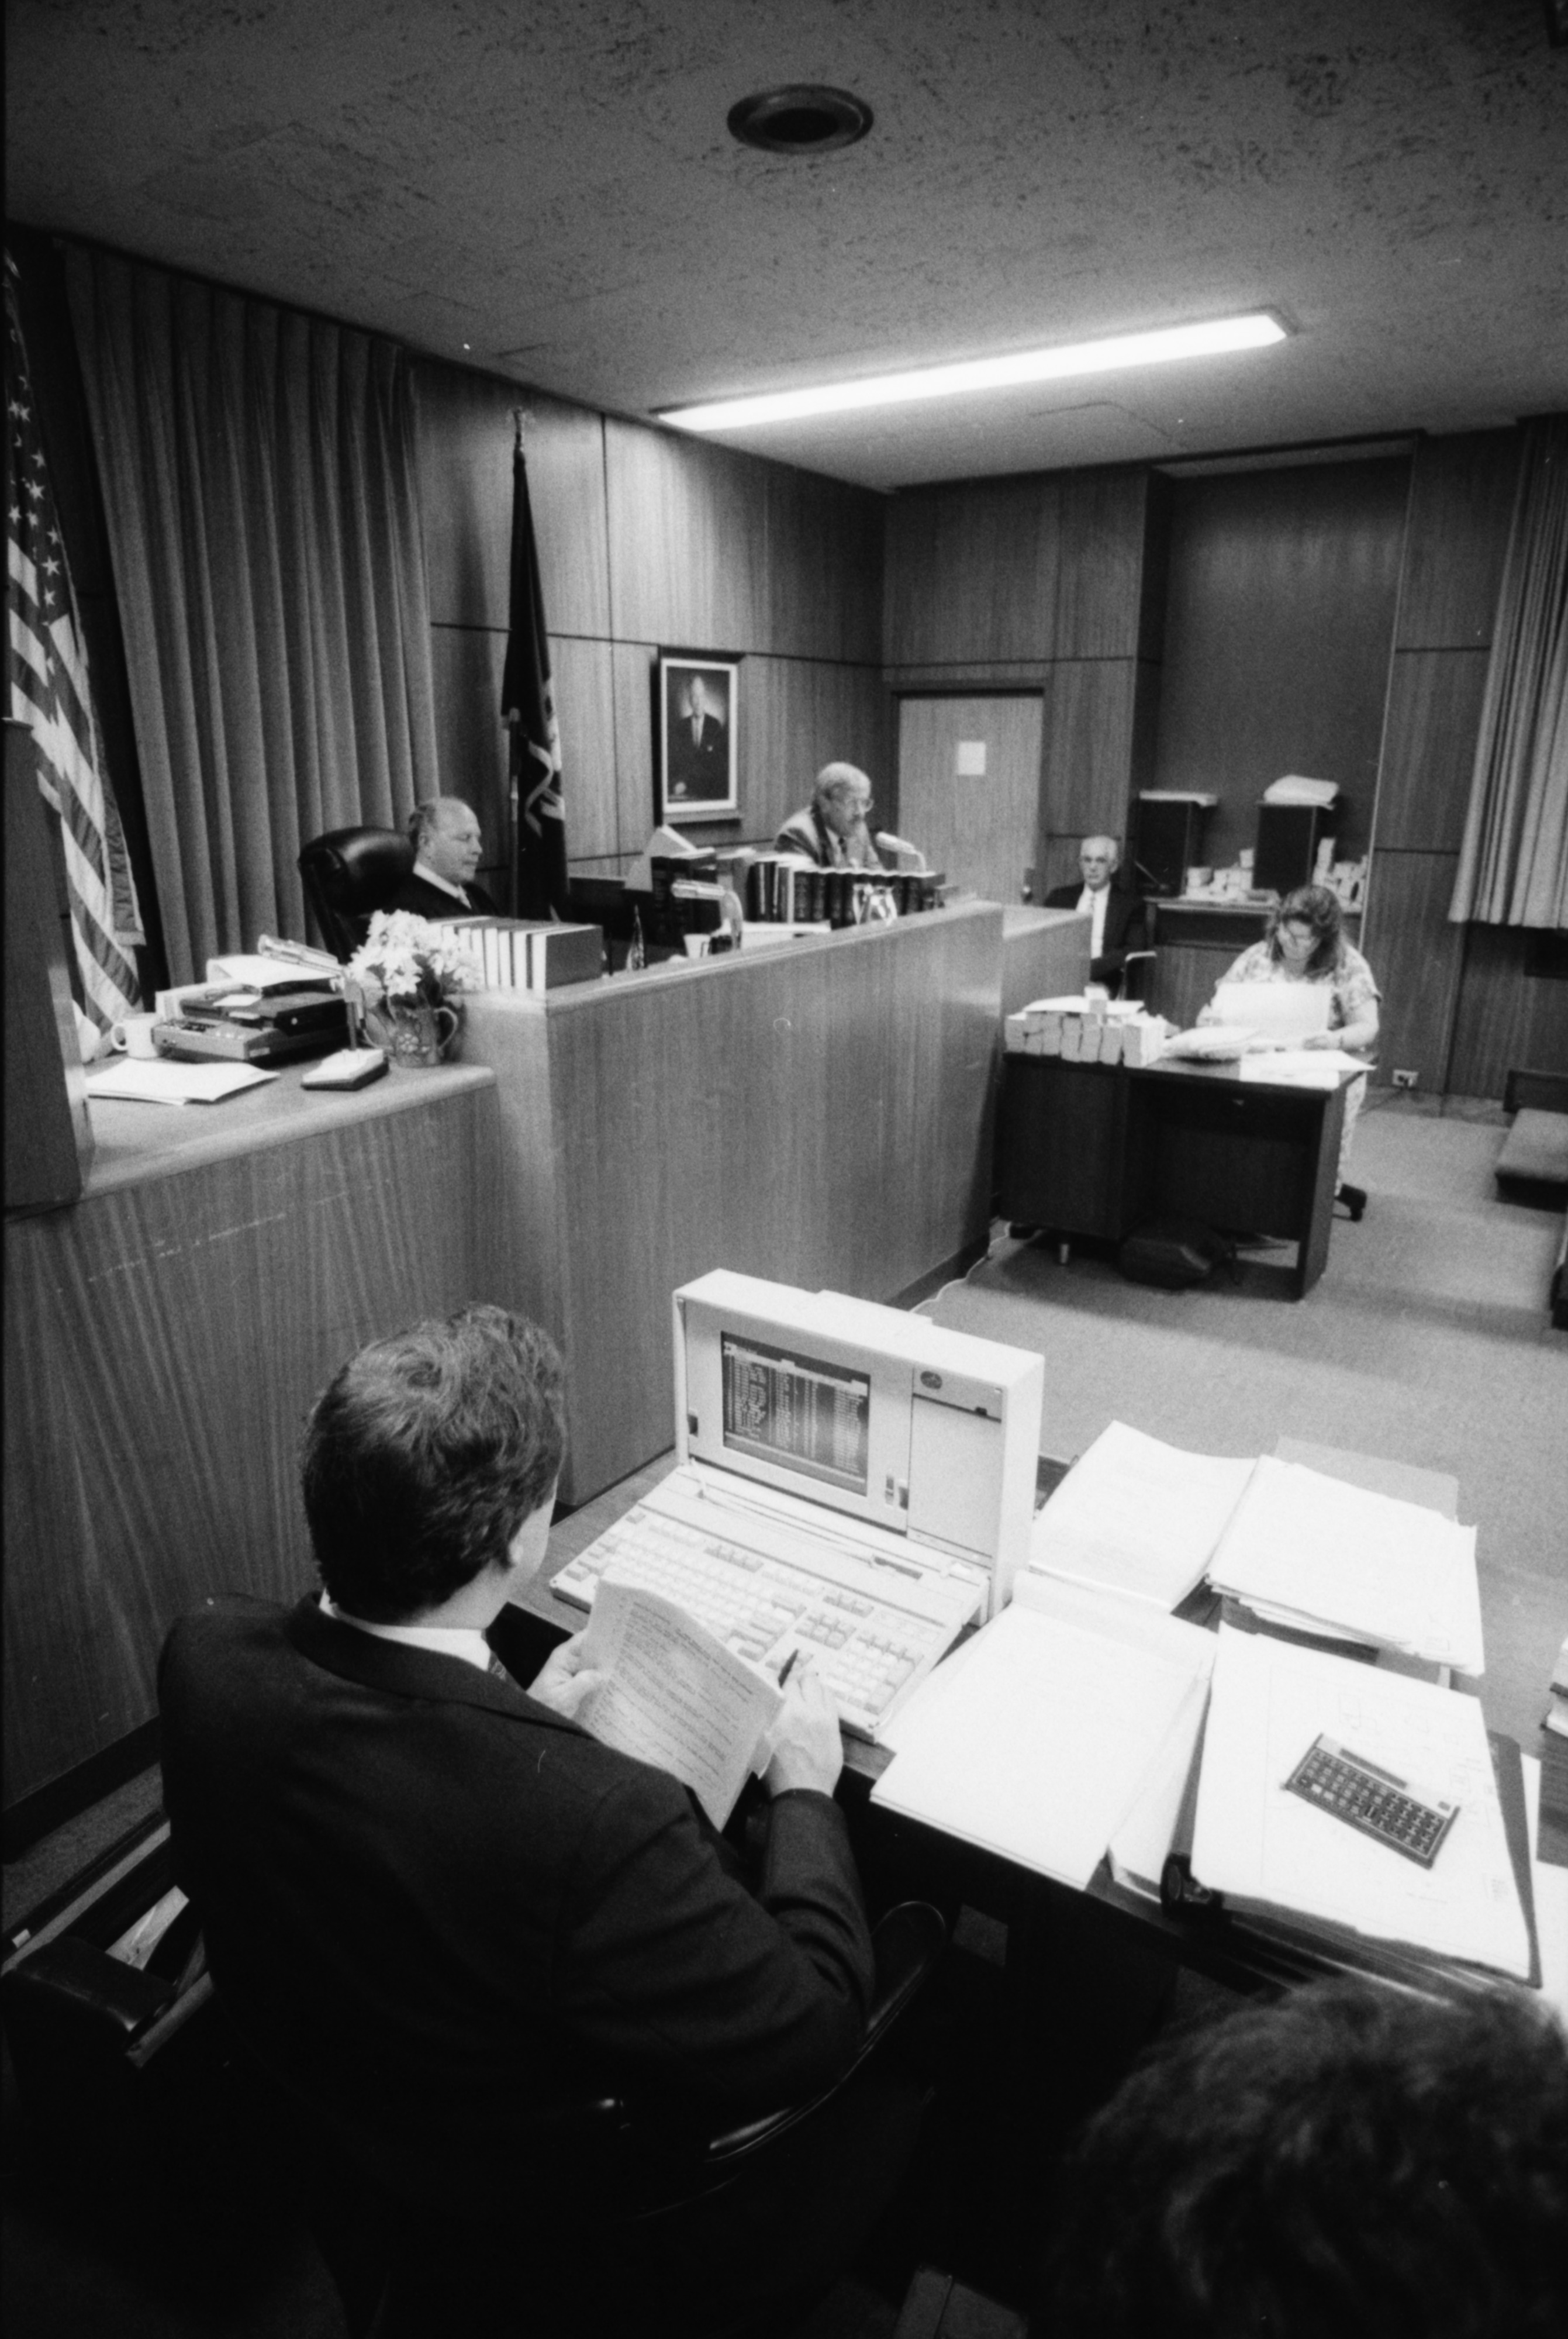 Attorney Alan Wasserman at Computer, Gelman Sciences trial, August 1990 image